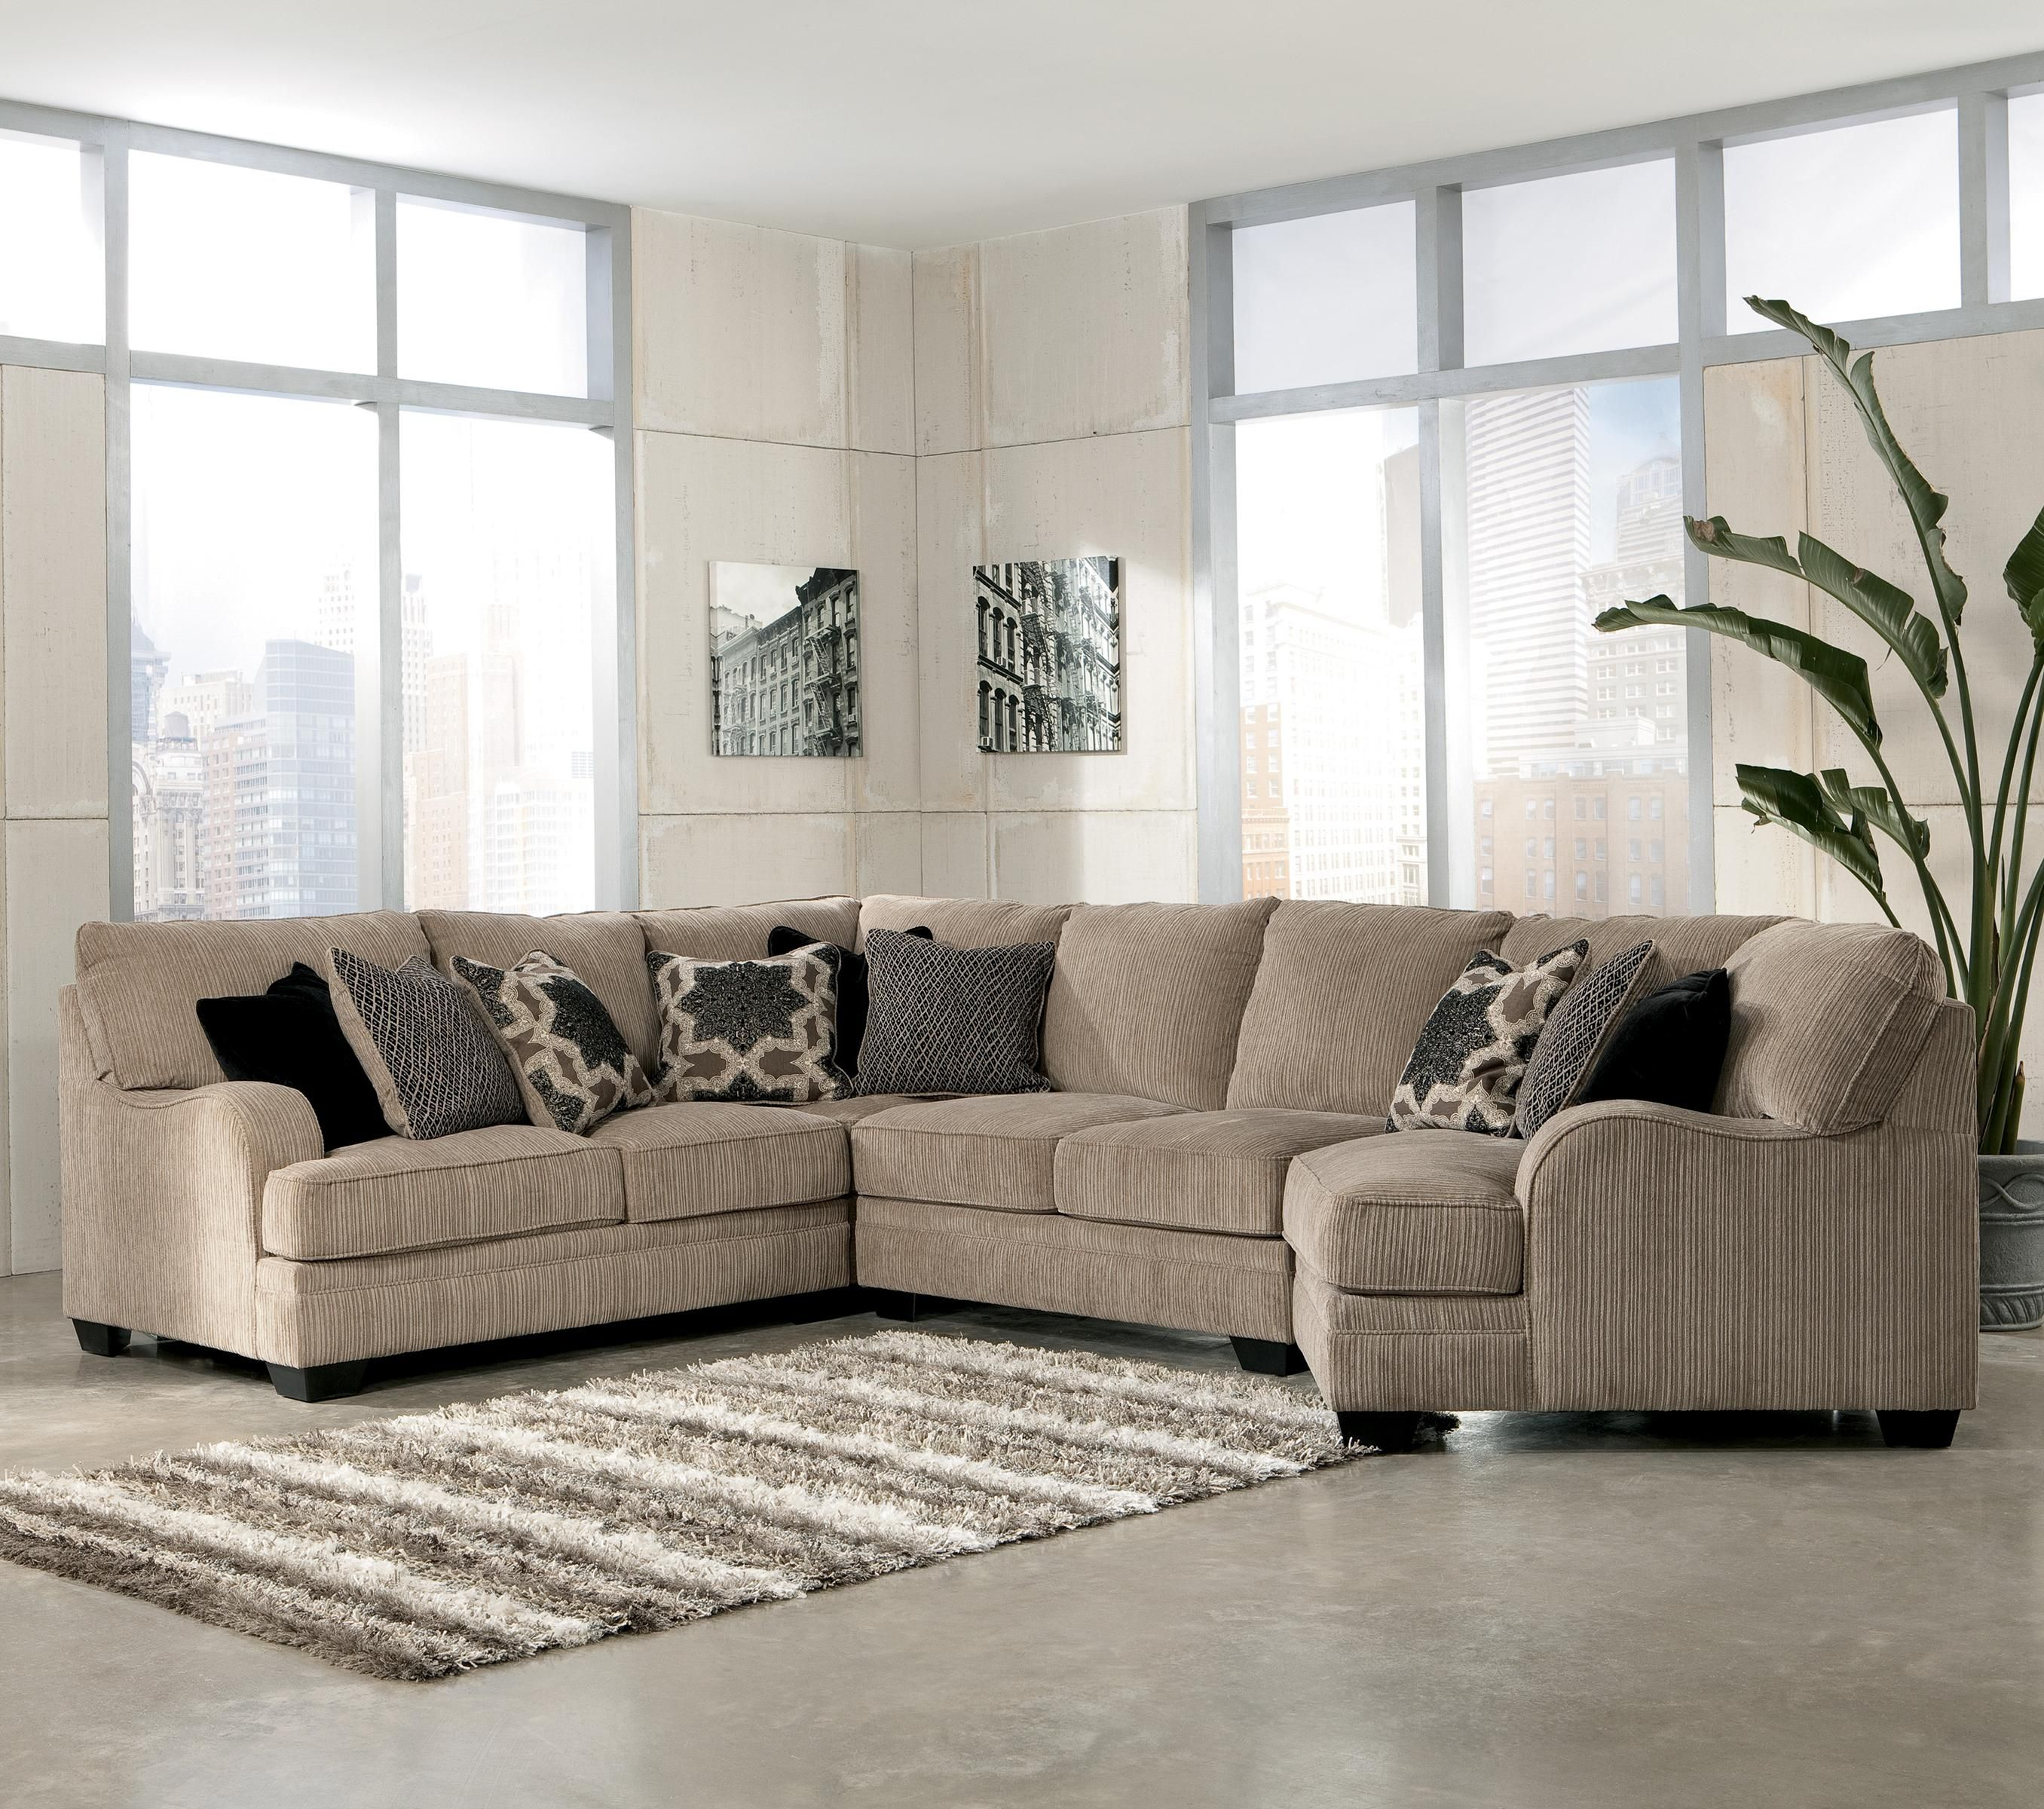 Katisha Platinum 4 Piece Sectional Sofa With Right Cuddler By